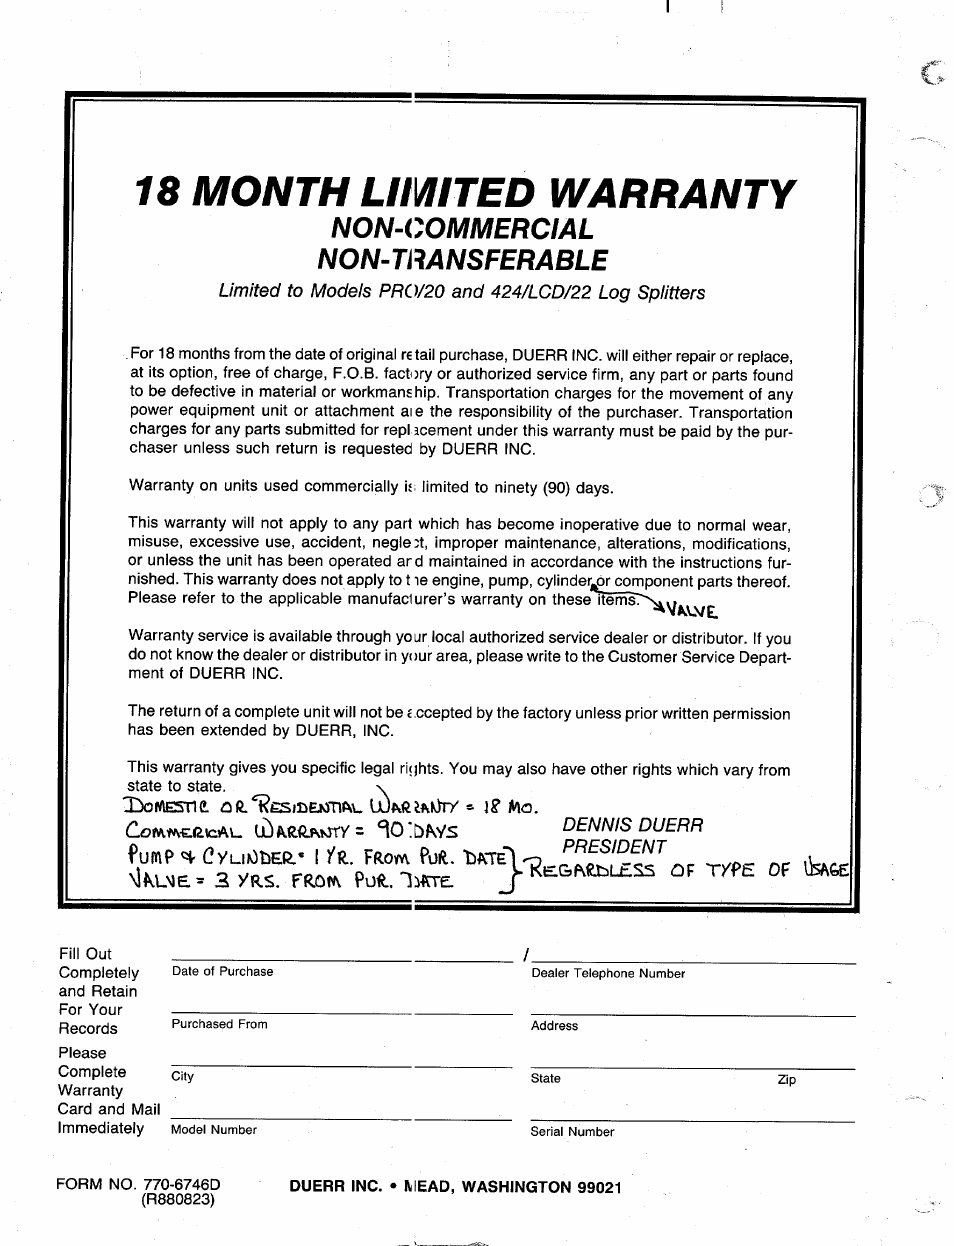 Duerr inc. • mead, washington 99021, 18 month limited warranty,  Non-commercial non-transferable | MTD 249-623-003 User Manual | Page 19 / 19